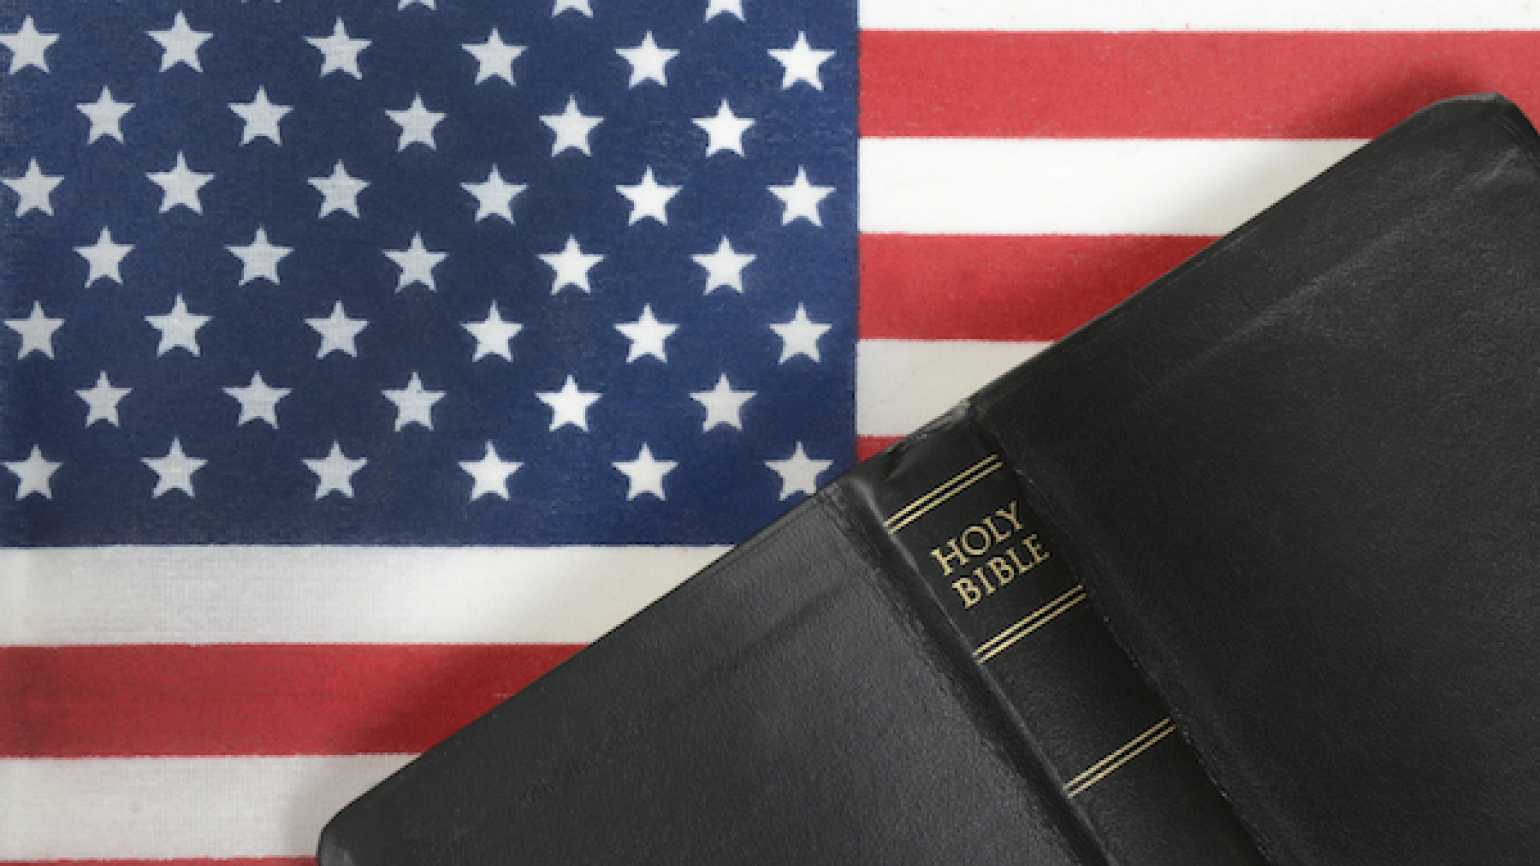 31 days of Bible verses for military families.